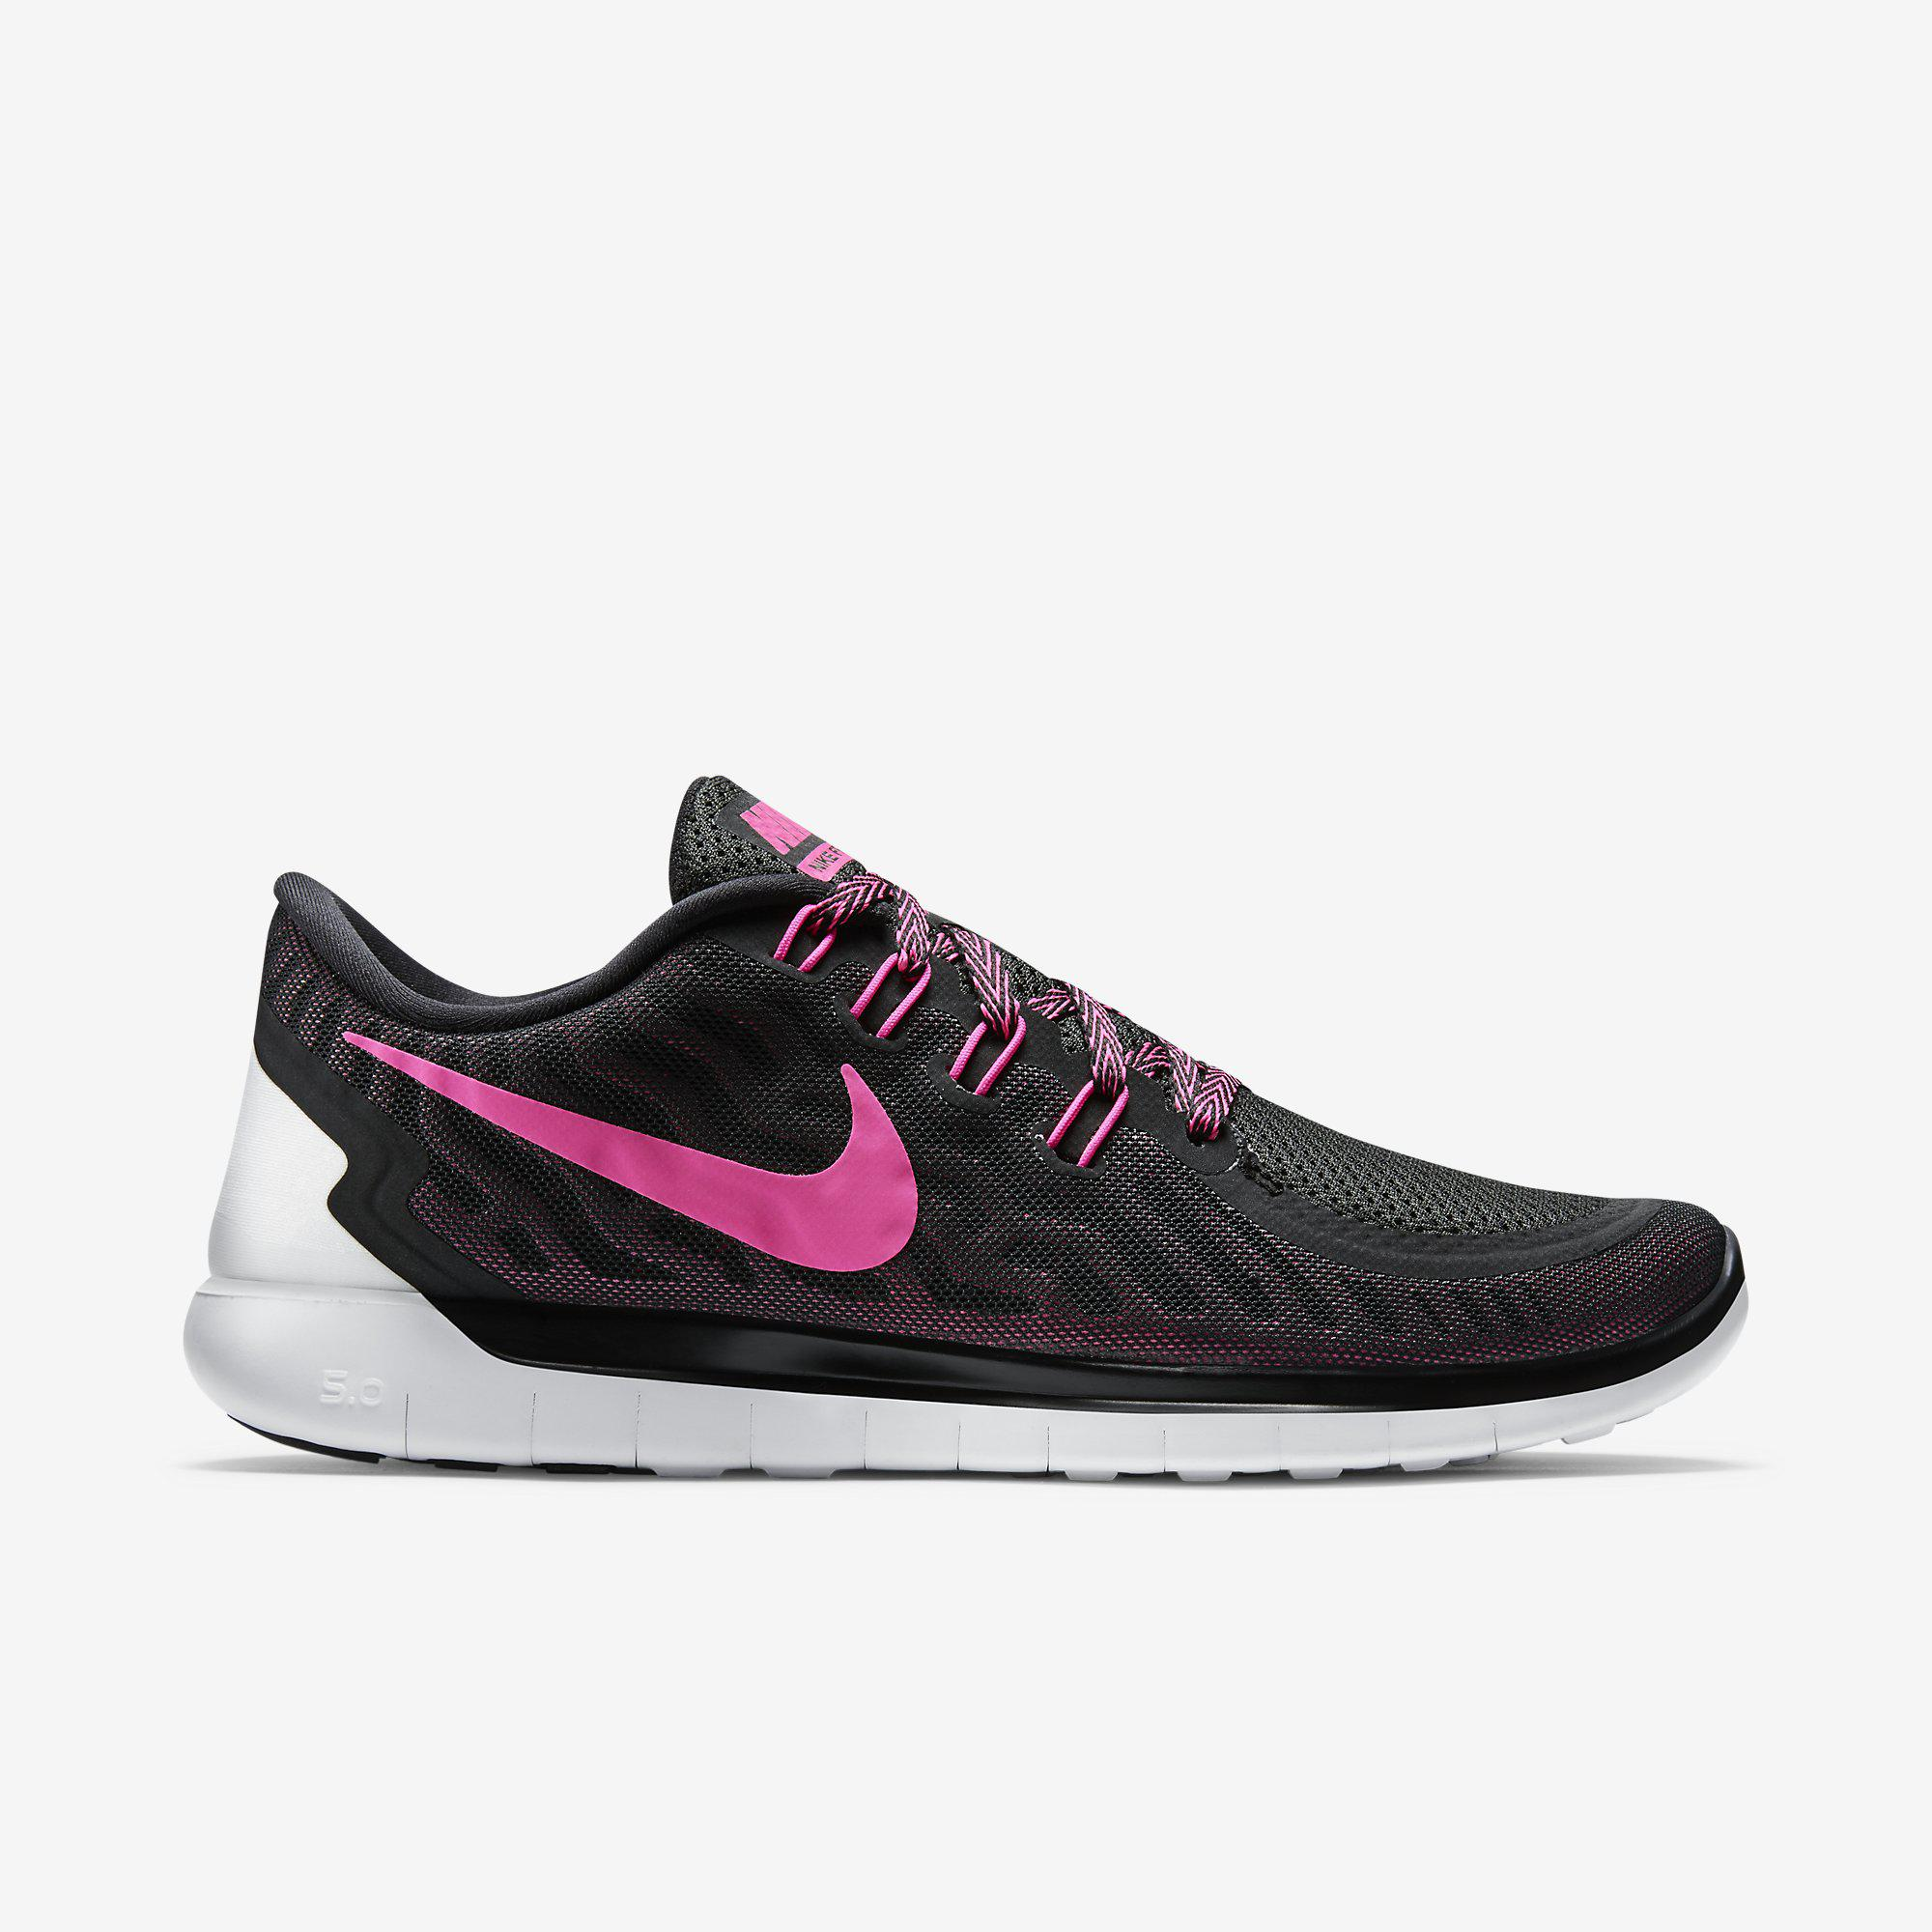 Nike Free 5.0 Women's Running Shoe 724383 008